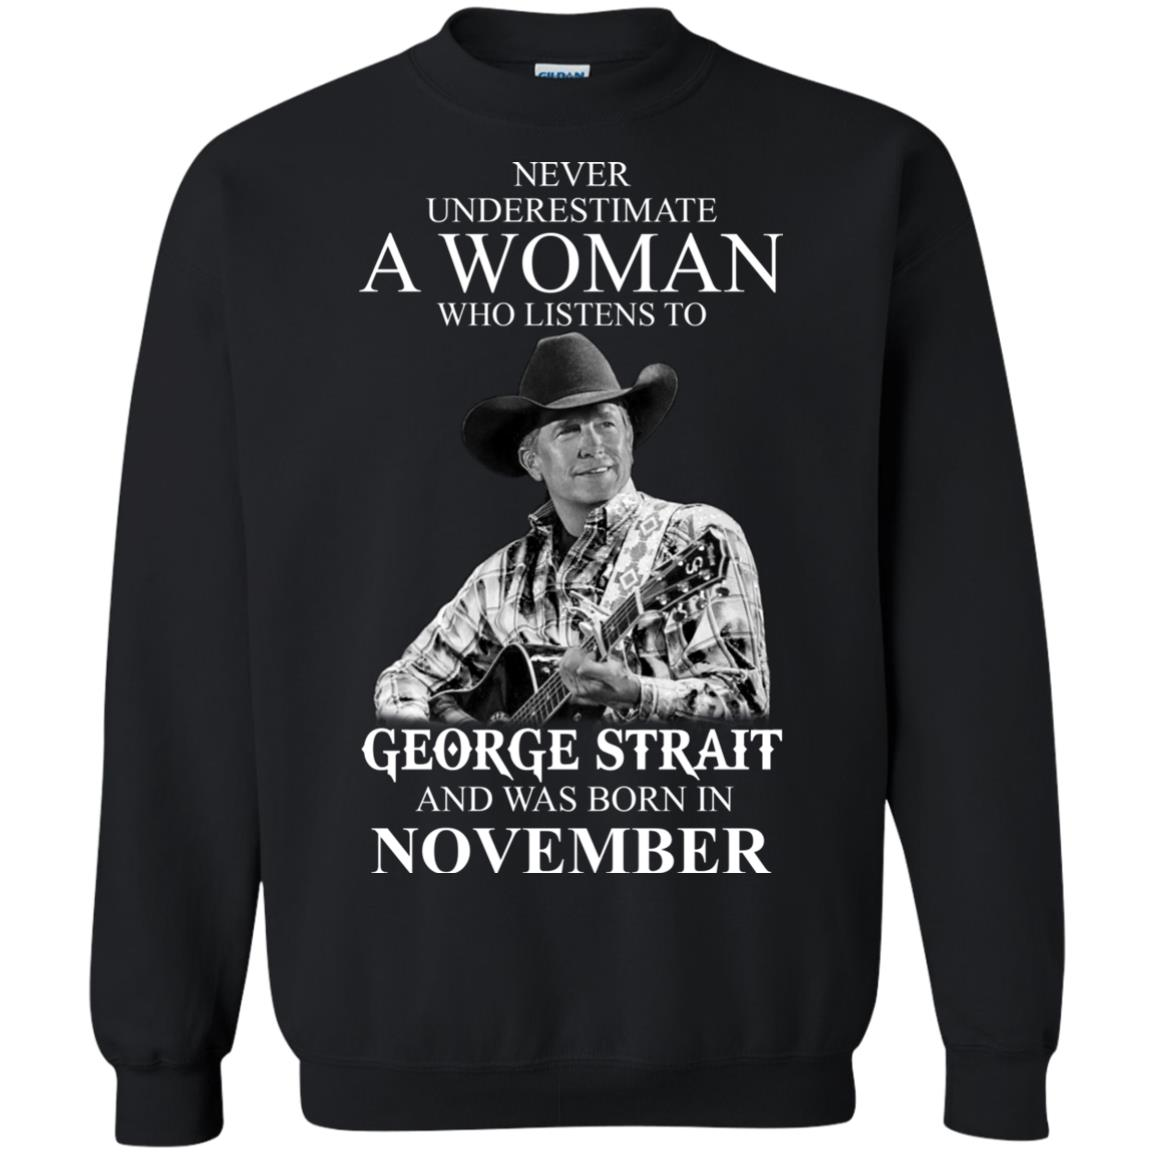 image 356 - Never Underestimate A Woman Who Listens To George Strait And Was Born In November shirt